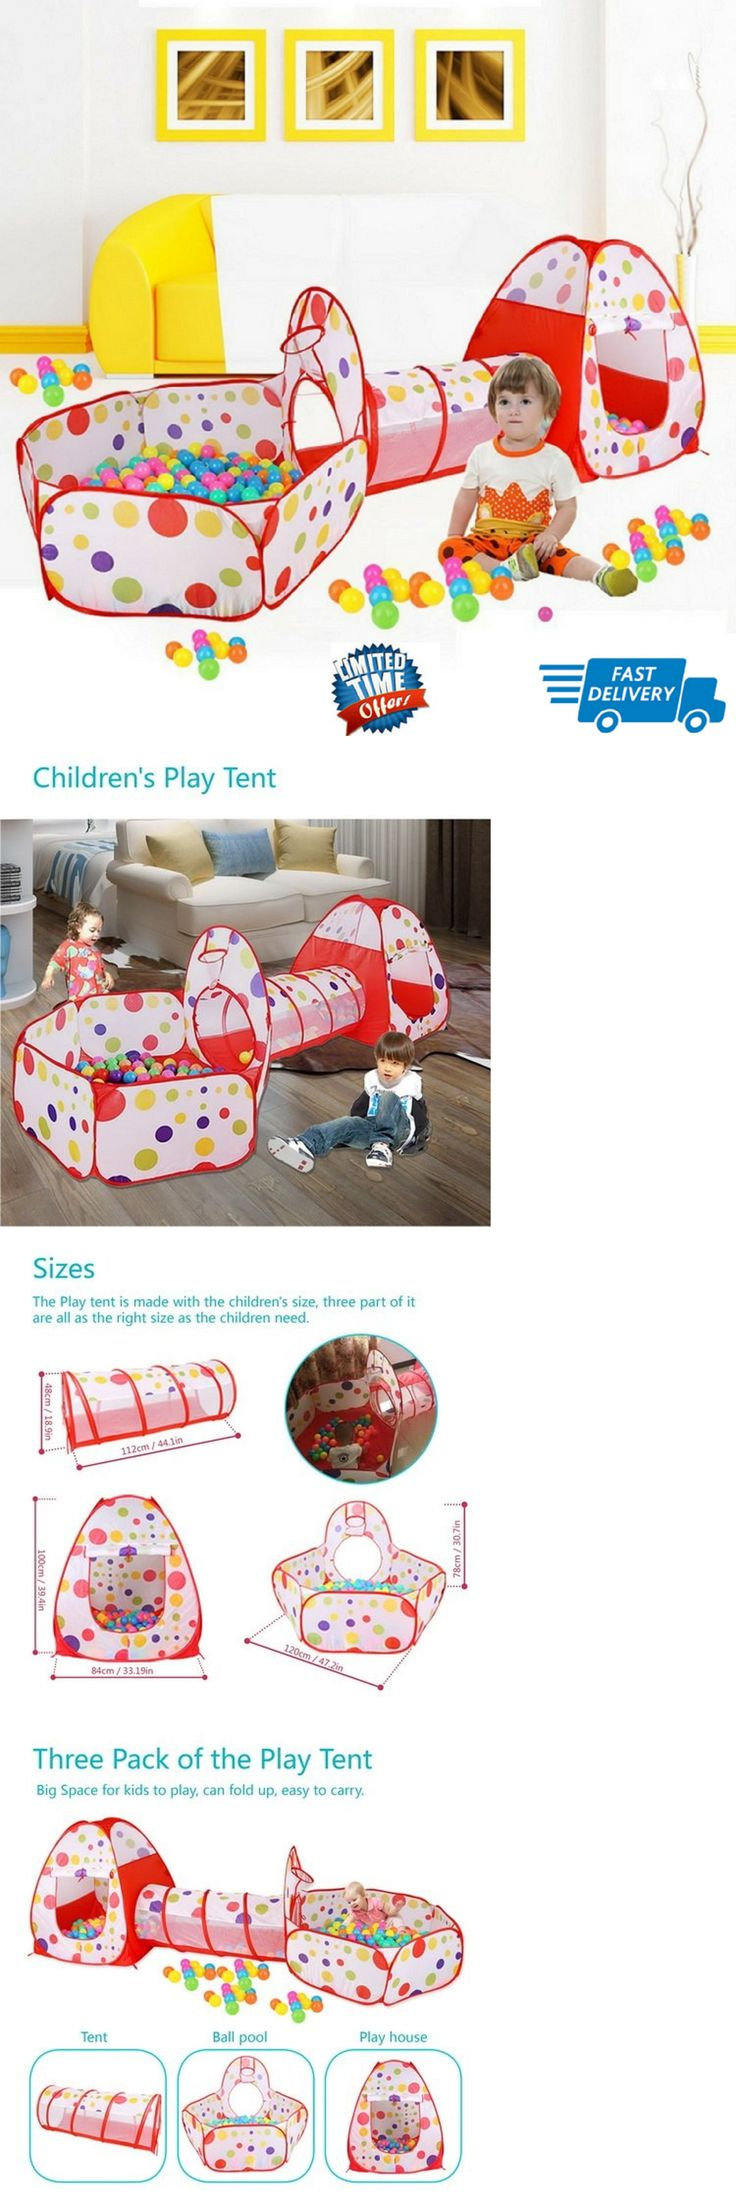 Developmental Baby Toys 100227: Baby Play Tunnel And Tent Ball Pit Toddler Toy Stages Indoor Outdoor Gamehouse W -> BUY IT NOW ONLY: $38.1 on eBay!